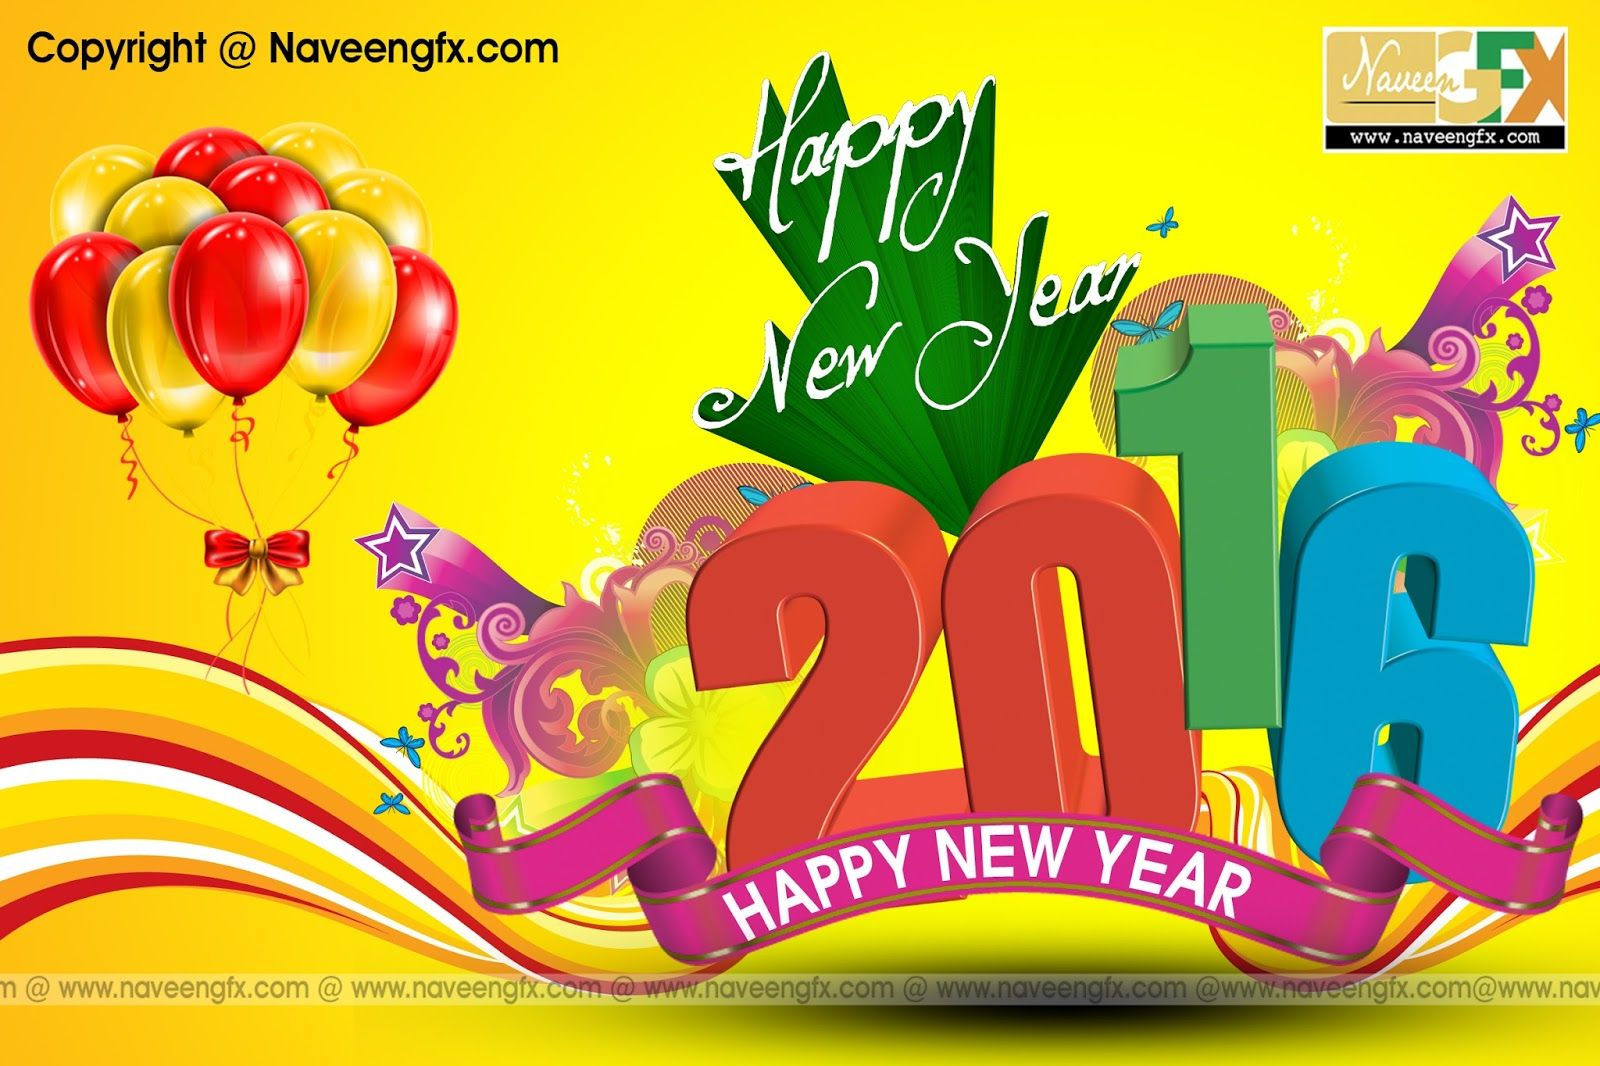 Naveengfx New Years 2016 Greeting Cards Psd Templates Free Downloads Psd Template Free Happy New Year Greetings Psd Templates